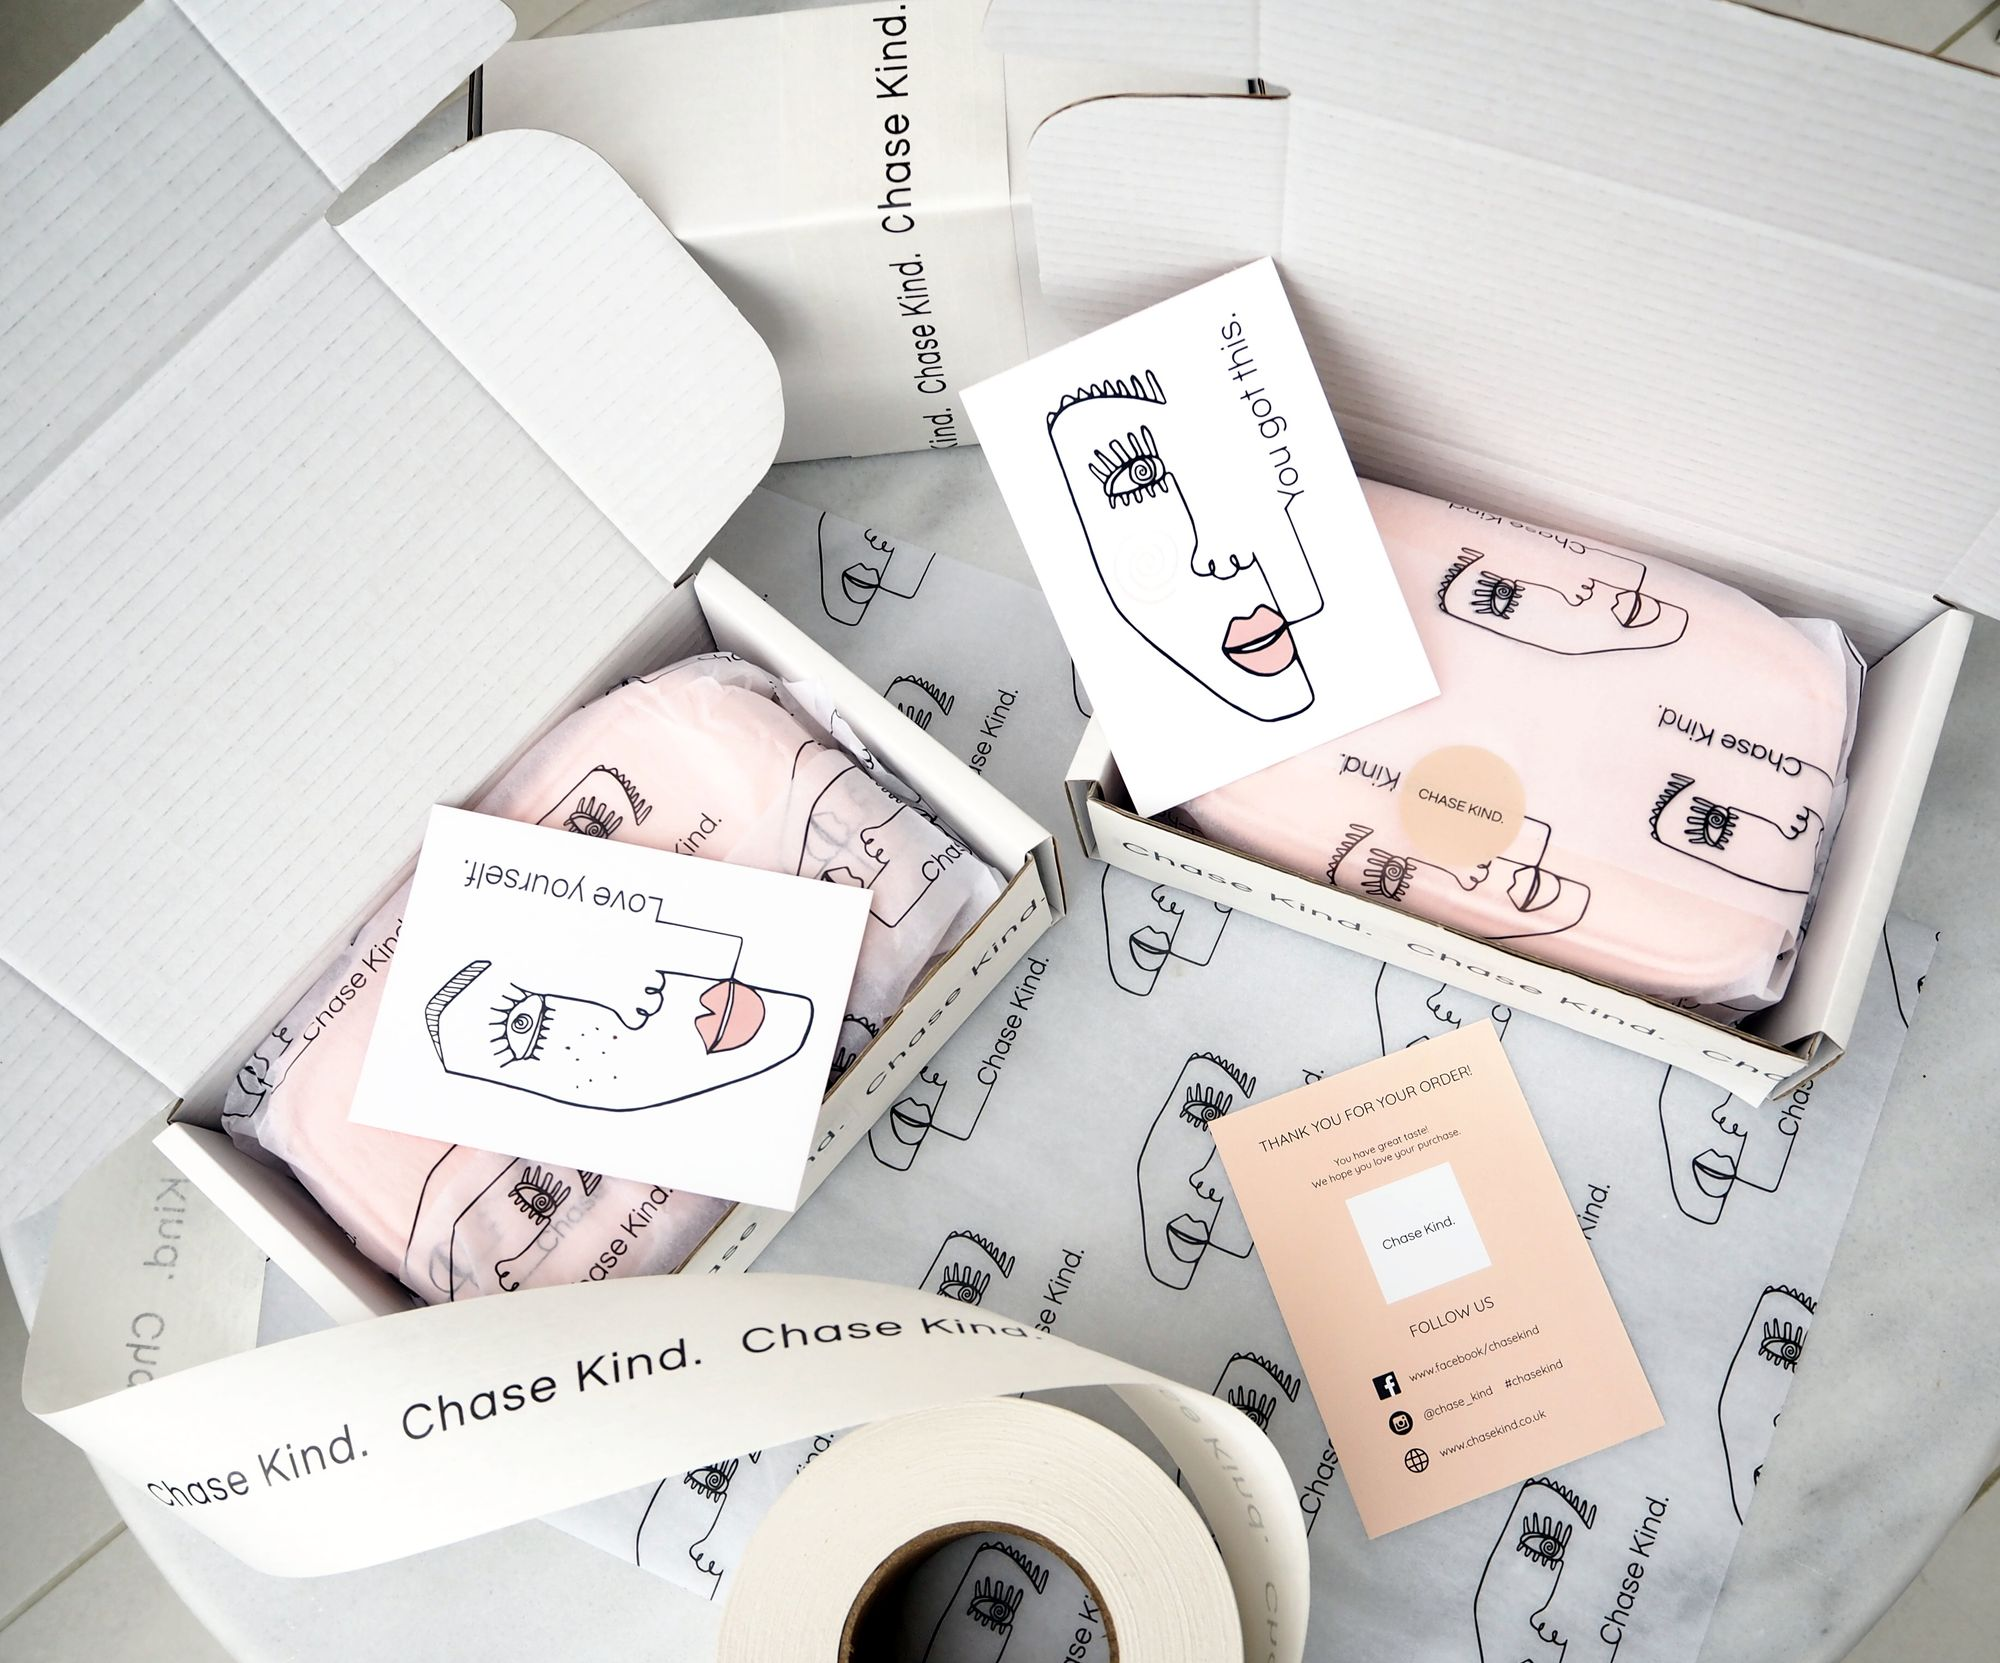 The Art of Unboxing: How Brands are using noissue products to create great unboxing experiences